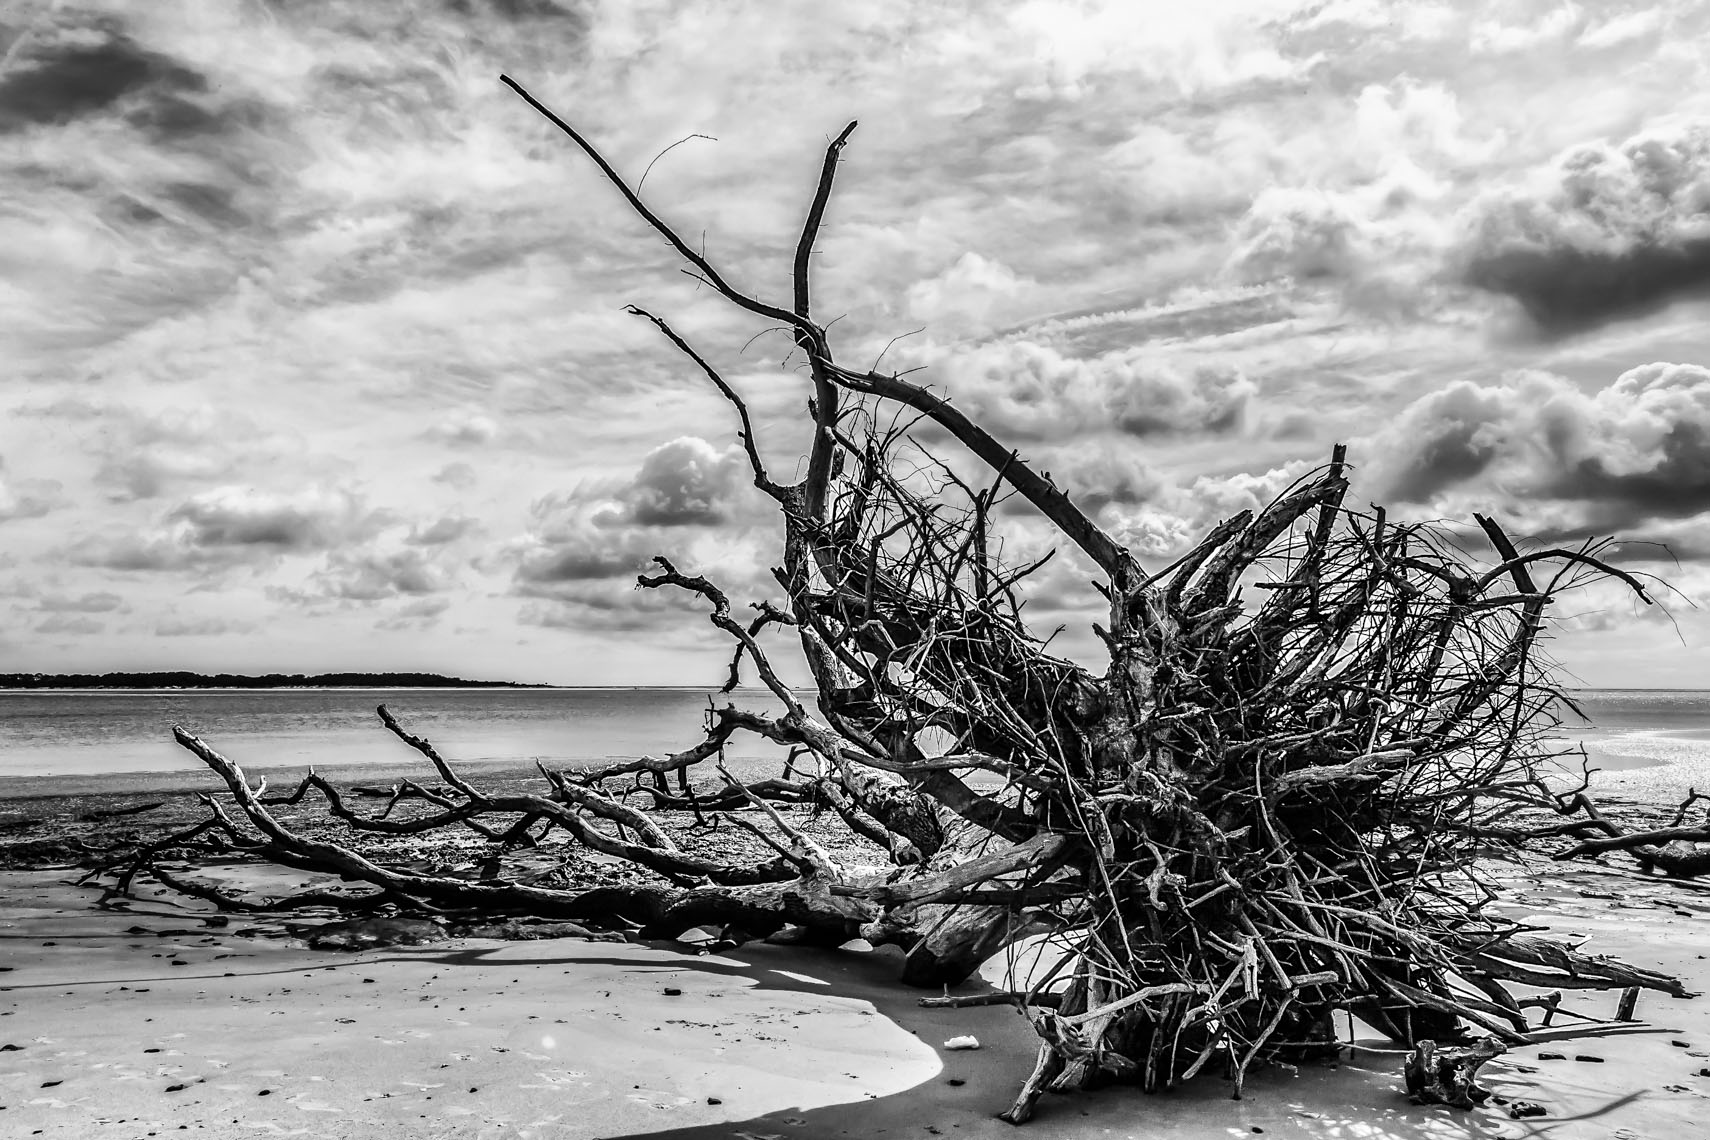 Boneyard Beach, Florida